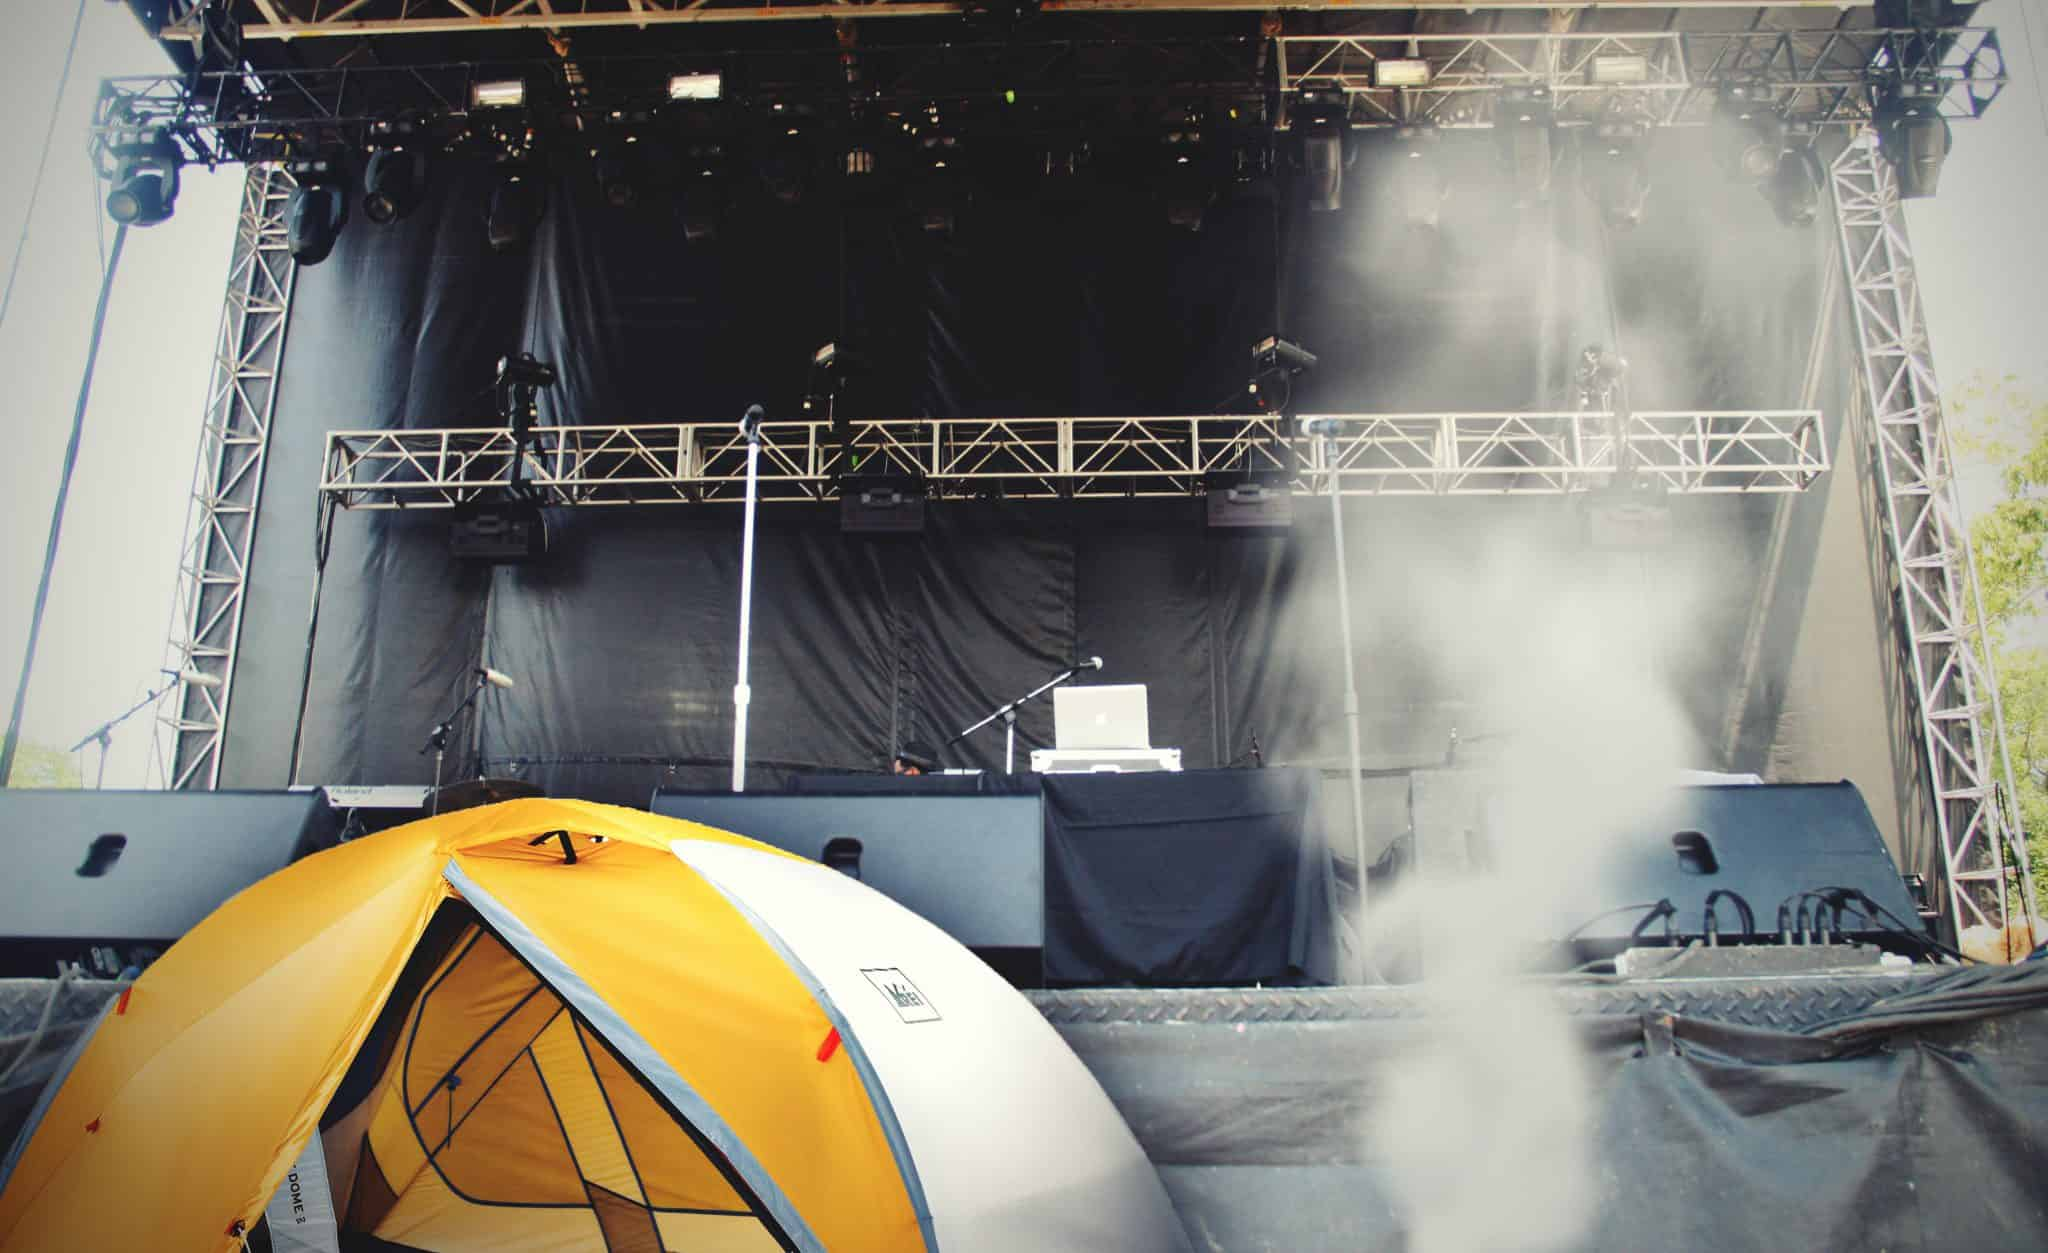 Family Plans Camping Trip To Front Row Of Pitchfork Stage